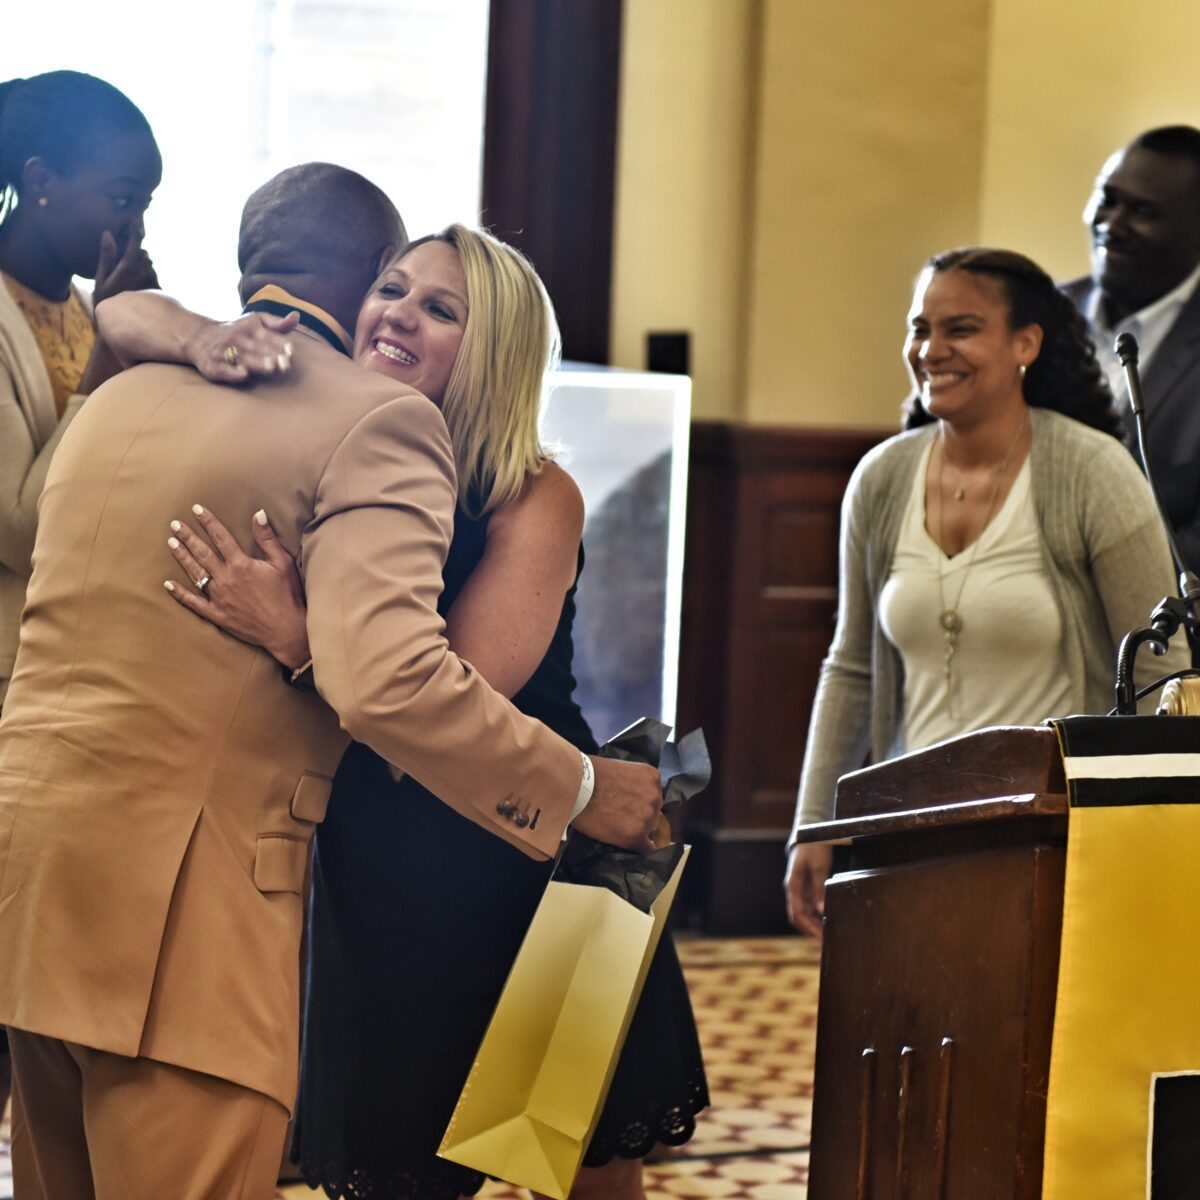 Andy Hayes, Assistant Vice Chancellor for Civil Rights, Title IX & ADA hugs McDonald as he accepts the gift.